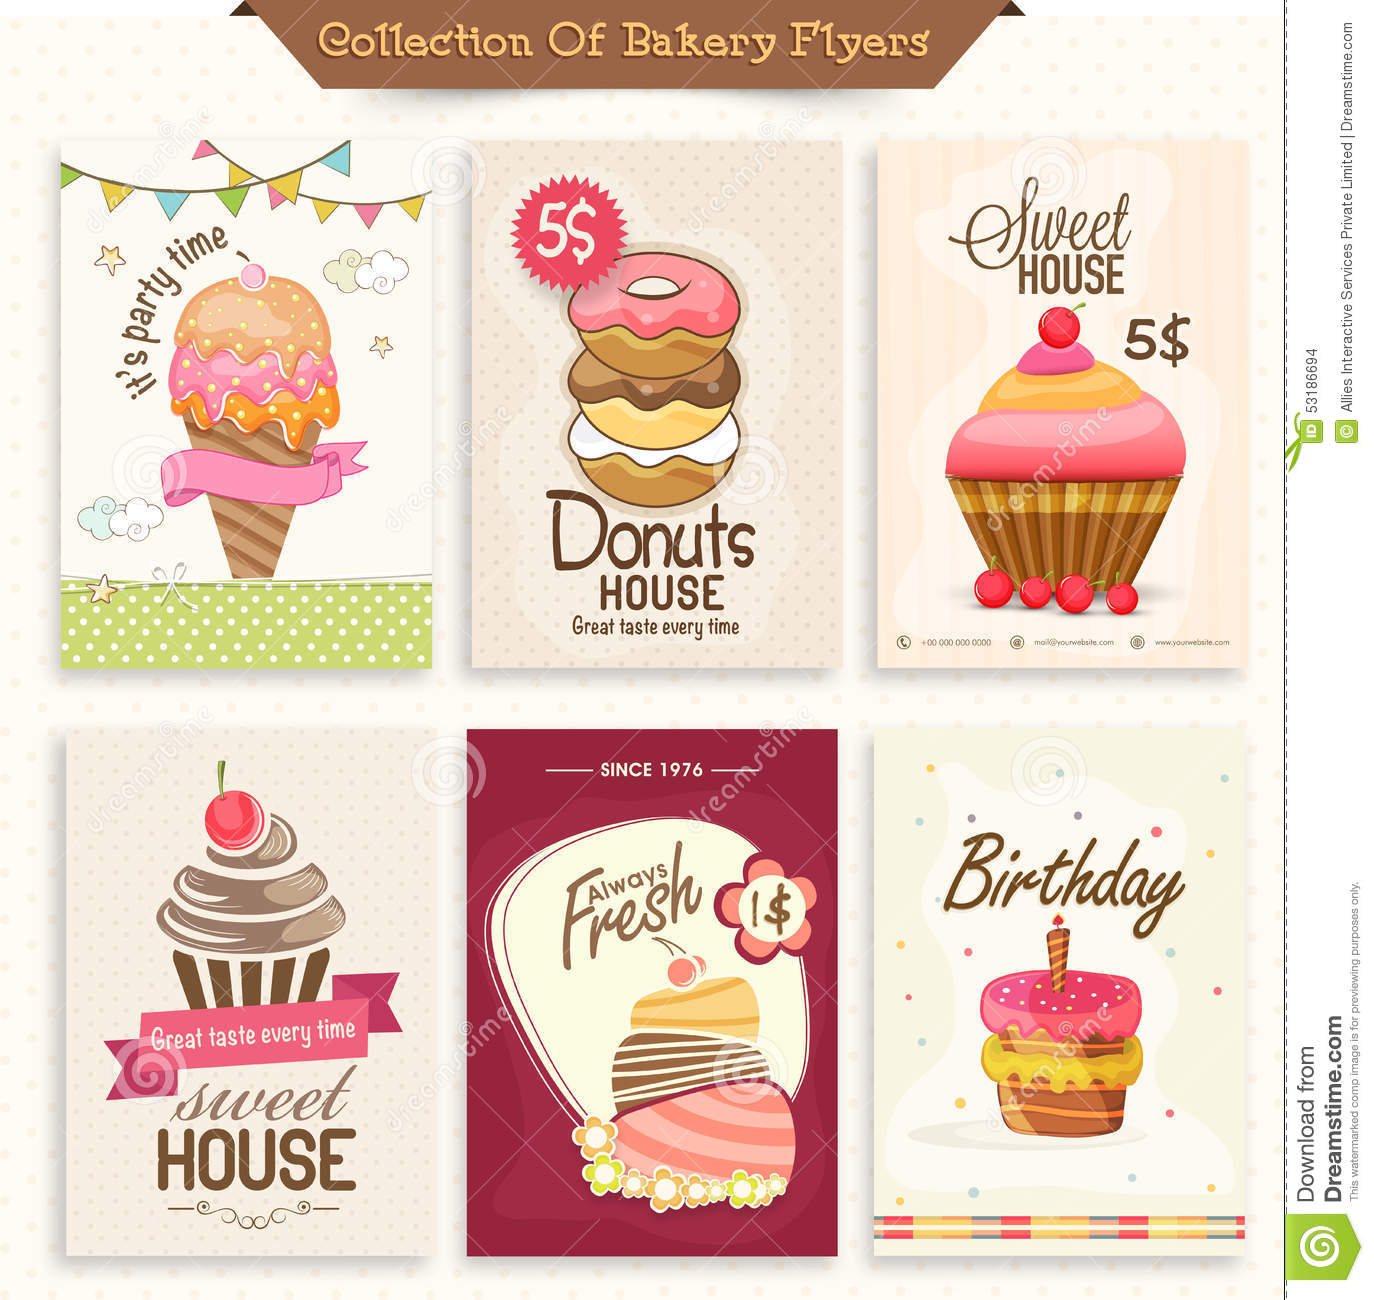 bakery brochure template free - collection of bakery flyers stock illustration